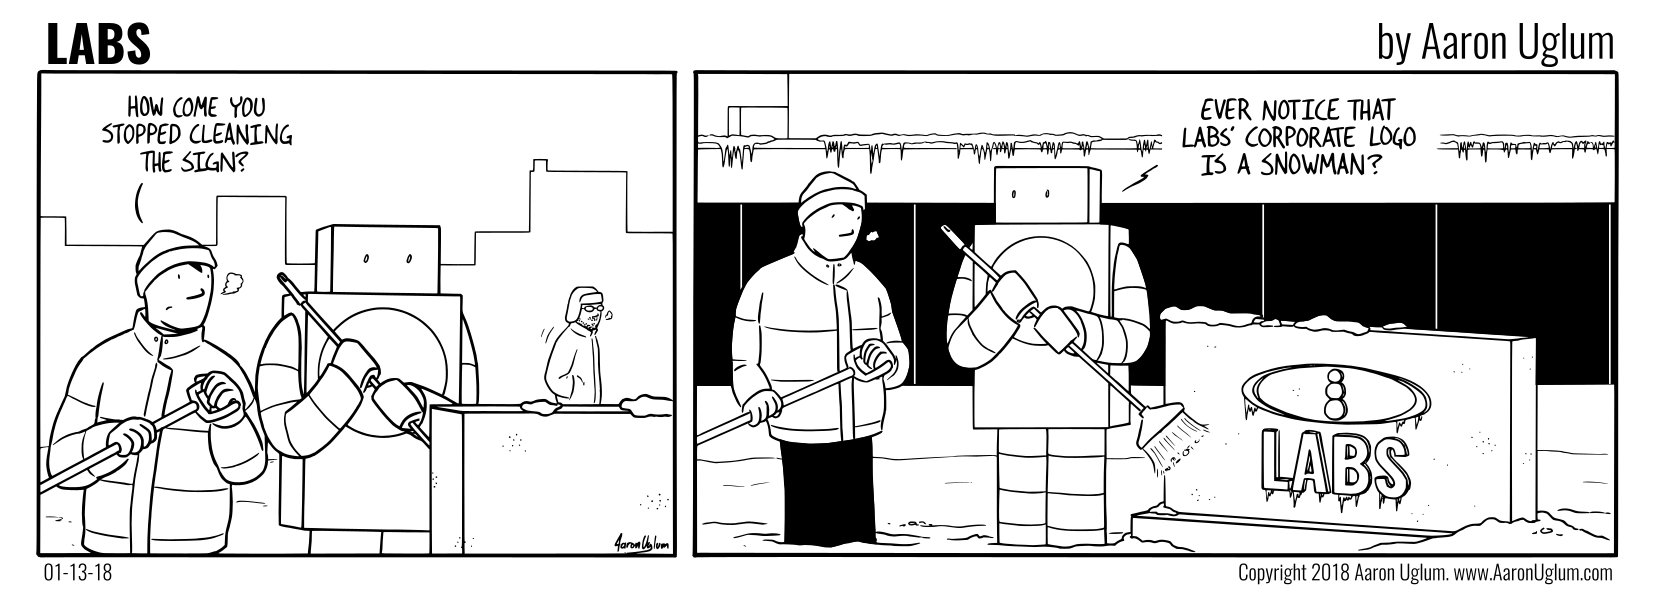 LABS Cartoon 01/13/18 - Cleaning the LABS Sign